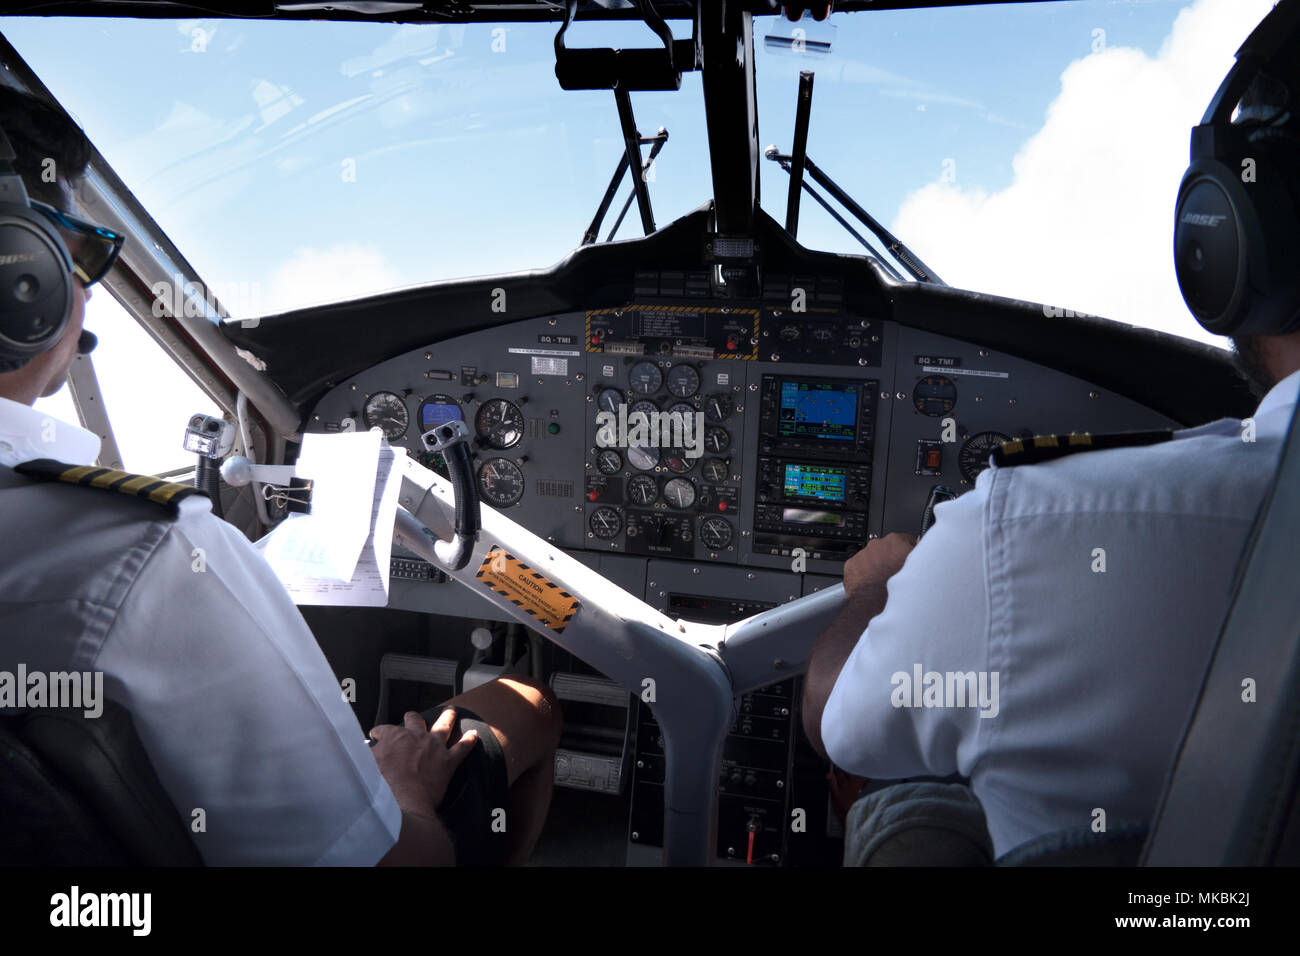 View of the cockpit of a small airplane flying in the sky. Team of pilots on plane, crew touching equipment and commands on dashboard - Stock Image